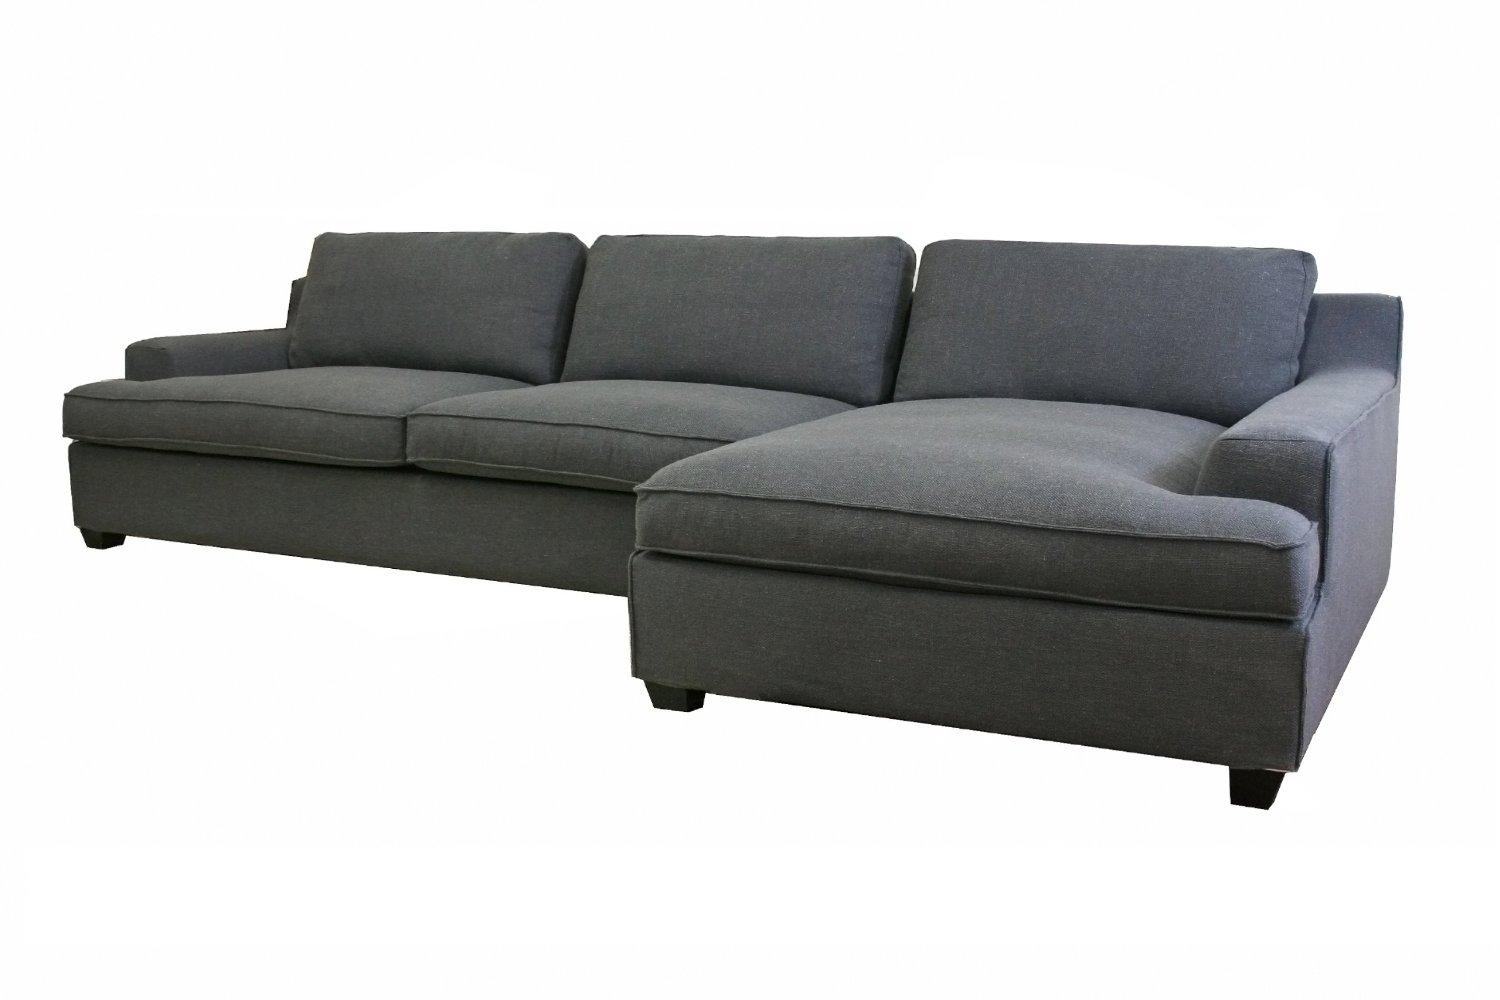 Sofas Center : Chaise Lounge Sofa Lovely With Interior Home Design For Sofa Beds With Chaise Lounge (View 5 of 20)